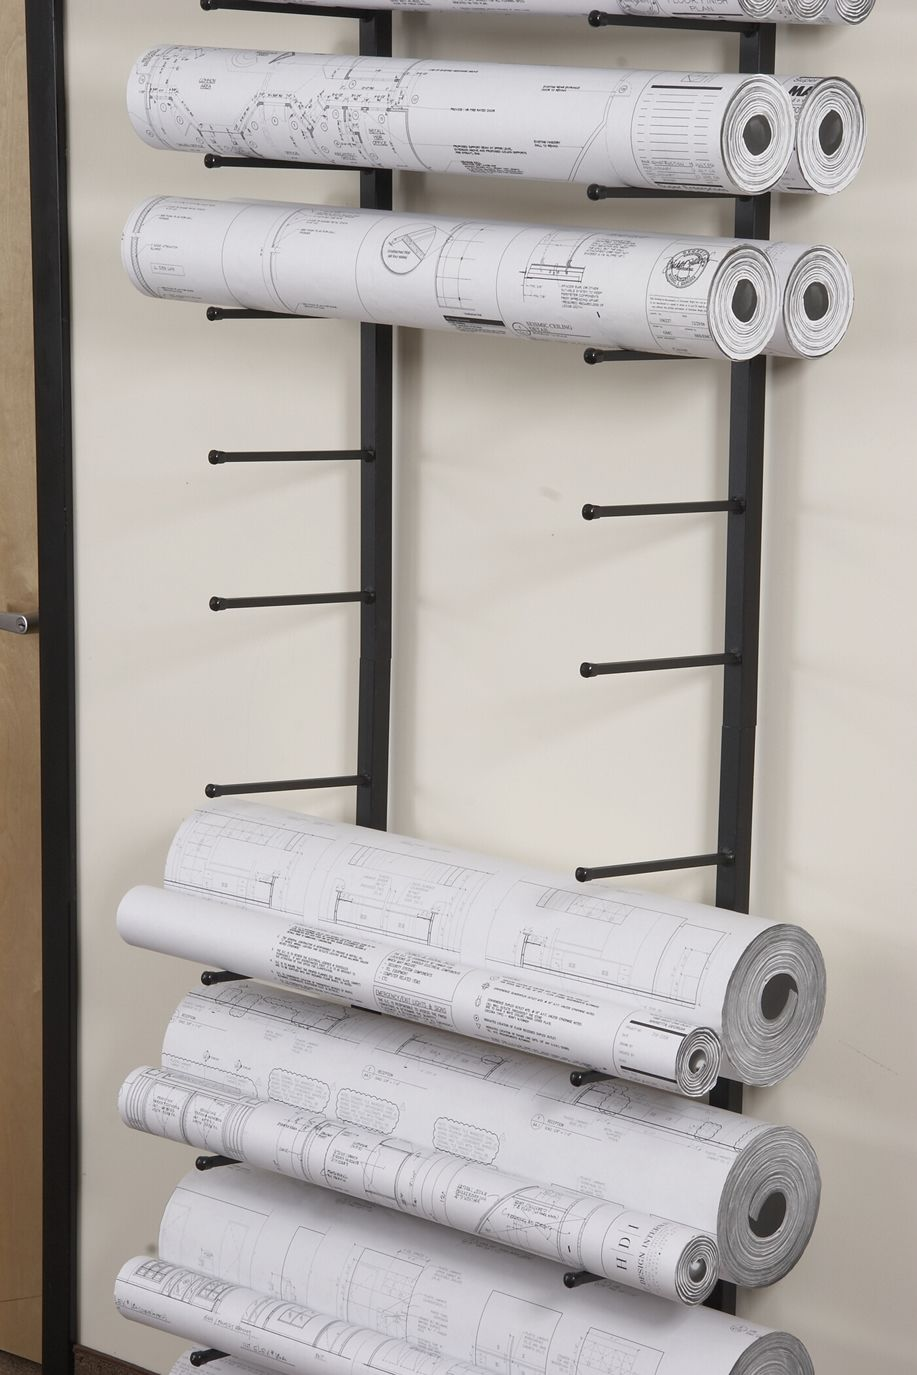 Vis i rack for large rolled documents such as blueprints plans and vis i rack for large rolled documents such as blueprints plans and architectural drawings malvernweather Images